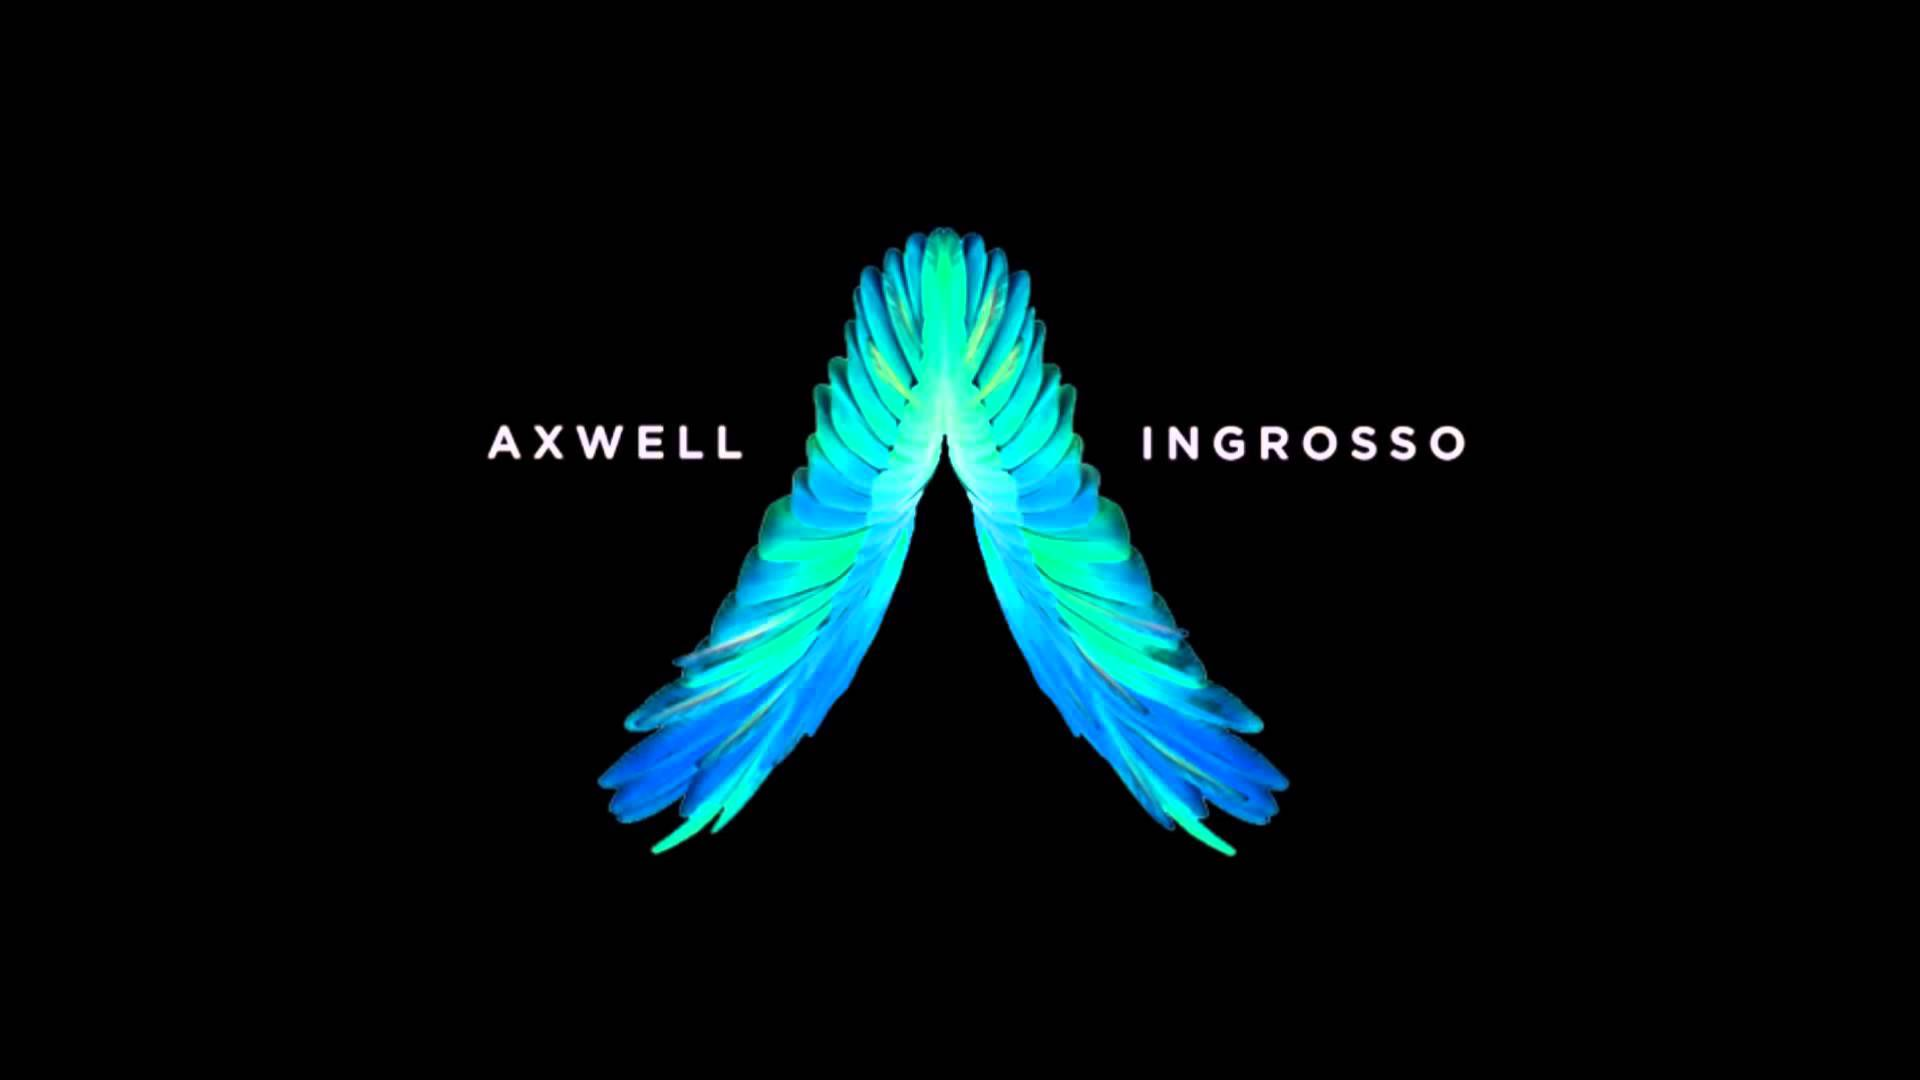 axwell ingrosso wallpaper with - photo #3